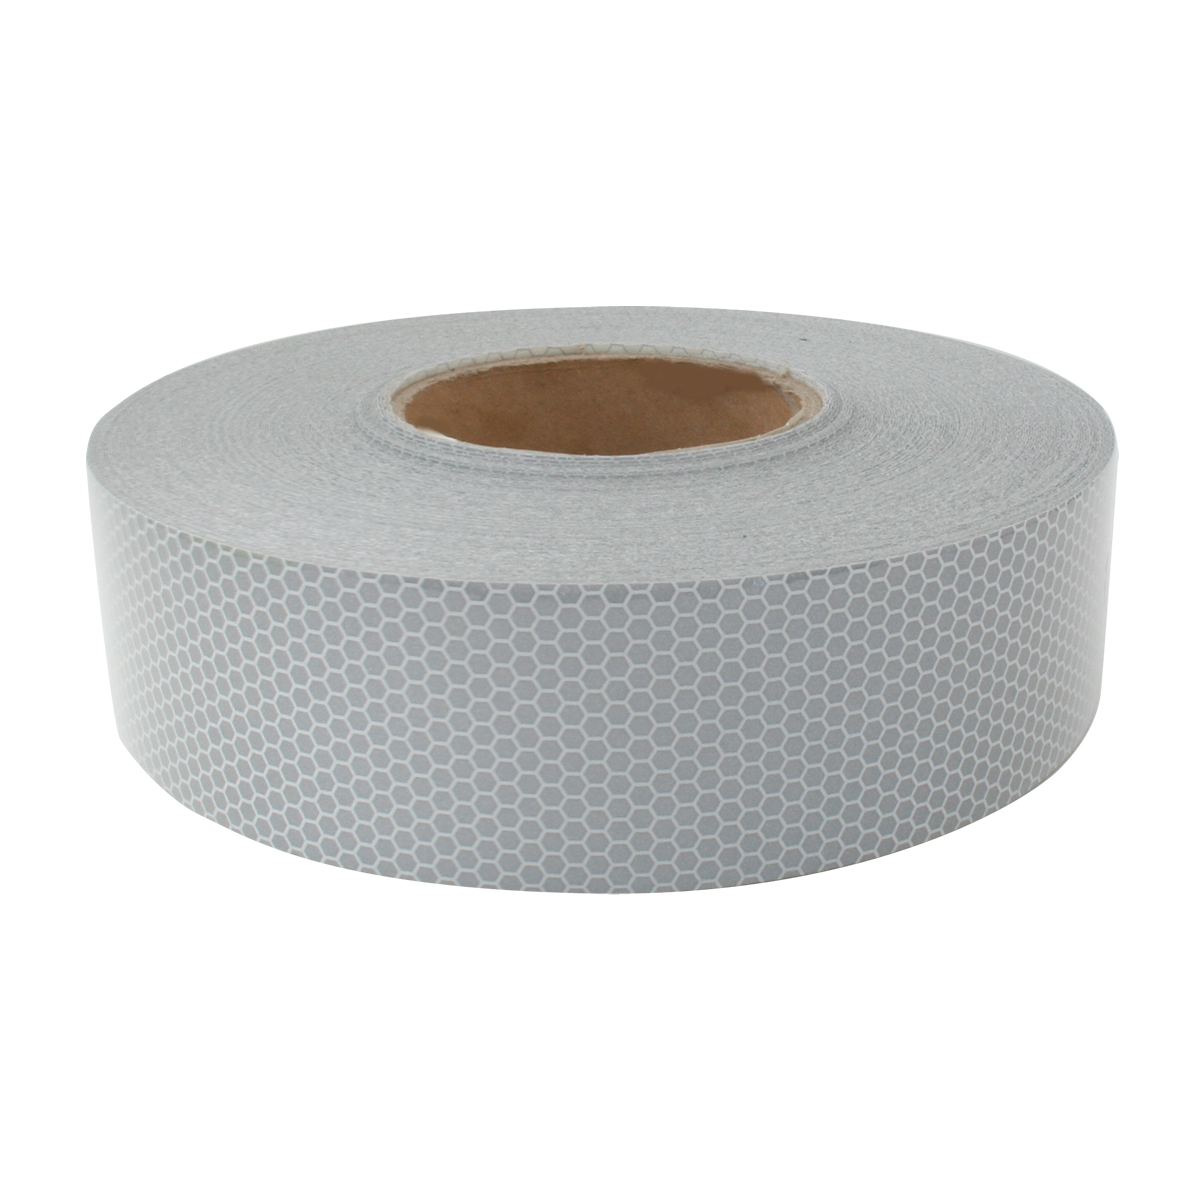 92287 DOT-C2 Conspicuity Tape in White 150' Roll